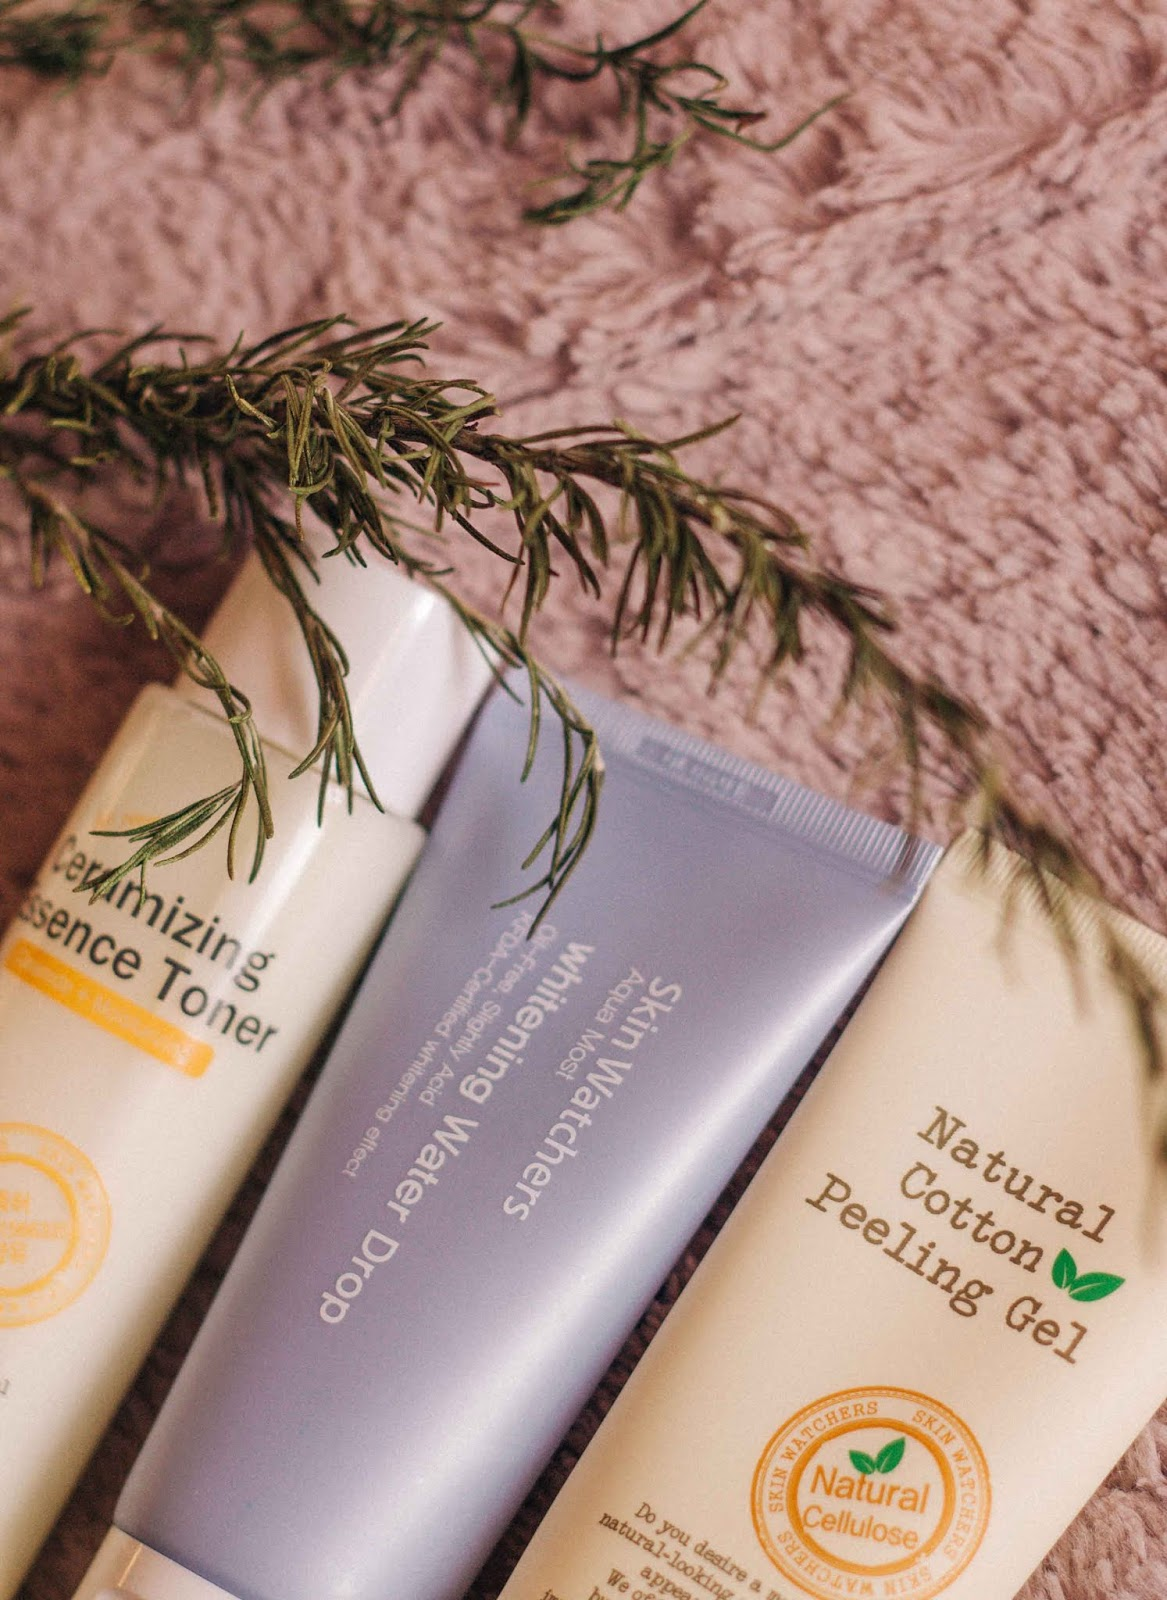 I got to know Skin Watchers last year through Jolse. The first product I tried from the brand was  a cleaning oil - a product that quickly became a cleaning essential to me. The brand was kind enough to send me three more products to try, and today, I will finally talk a bit about each one.